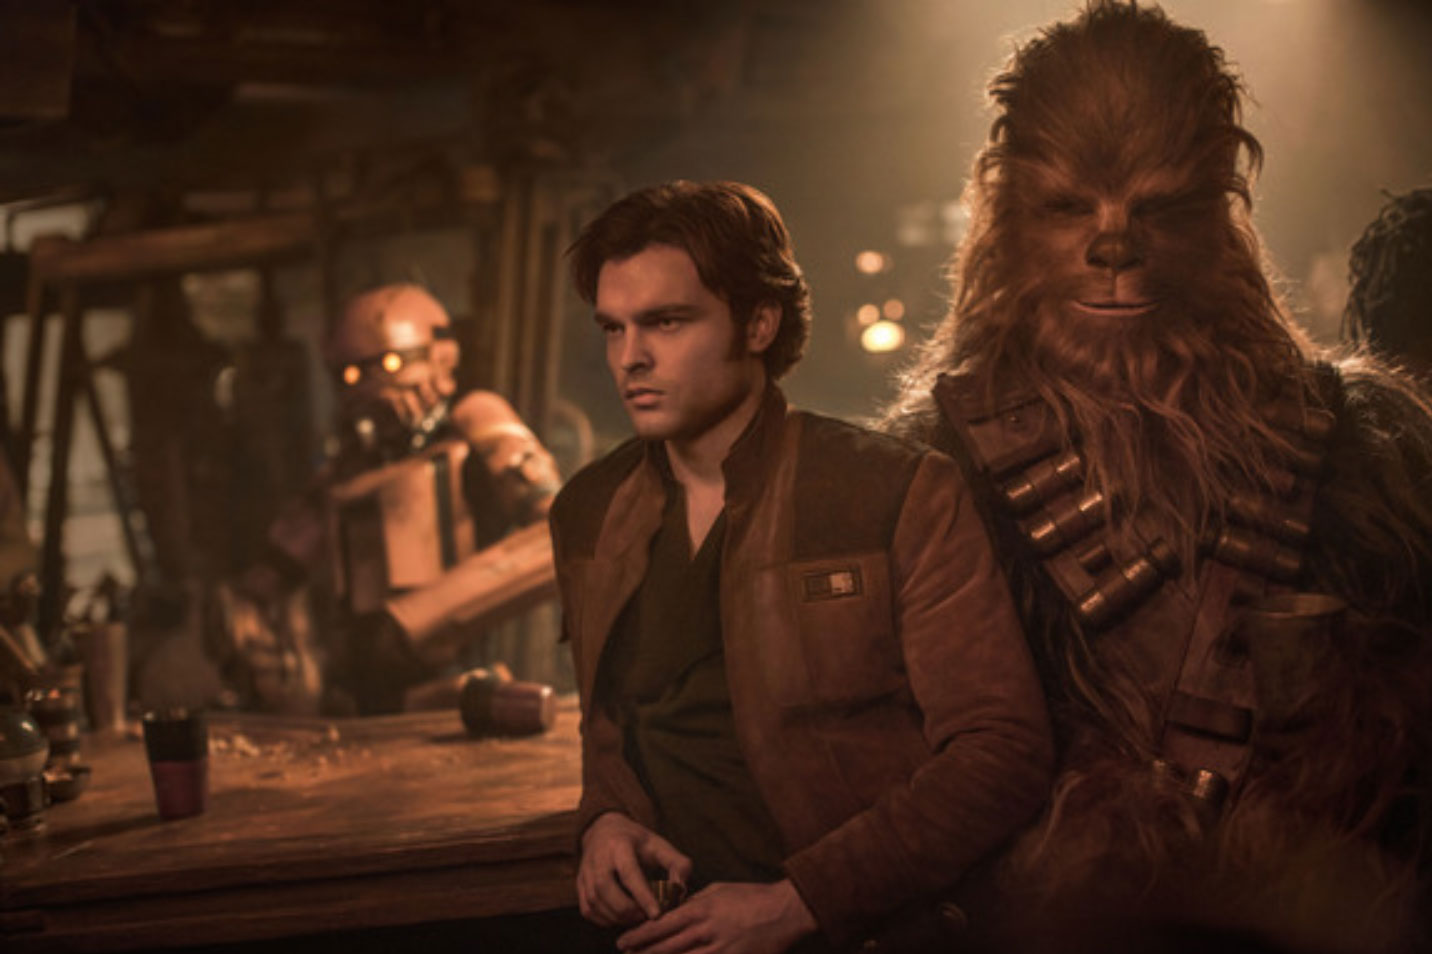 Solo: A Star Wars Story - Han Solo & Chewbacca